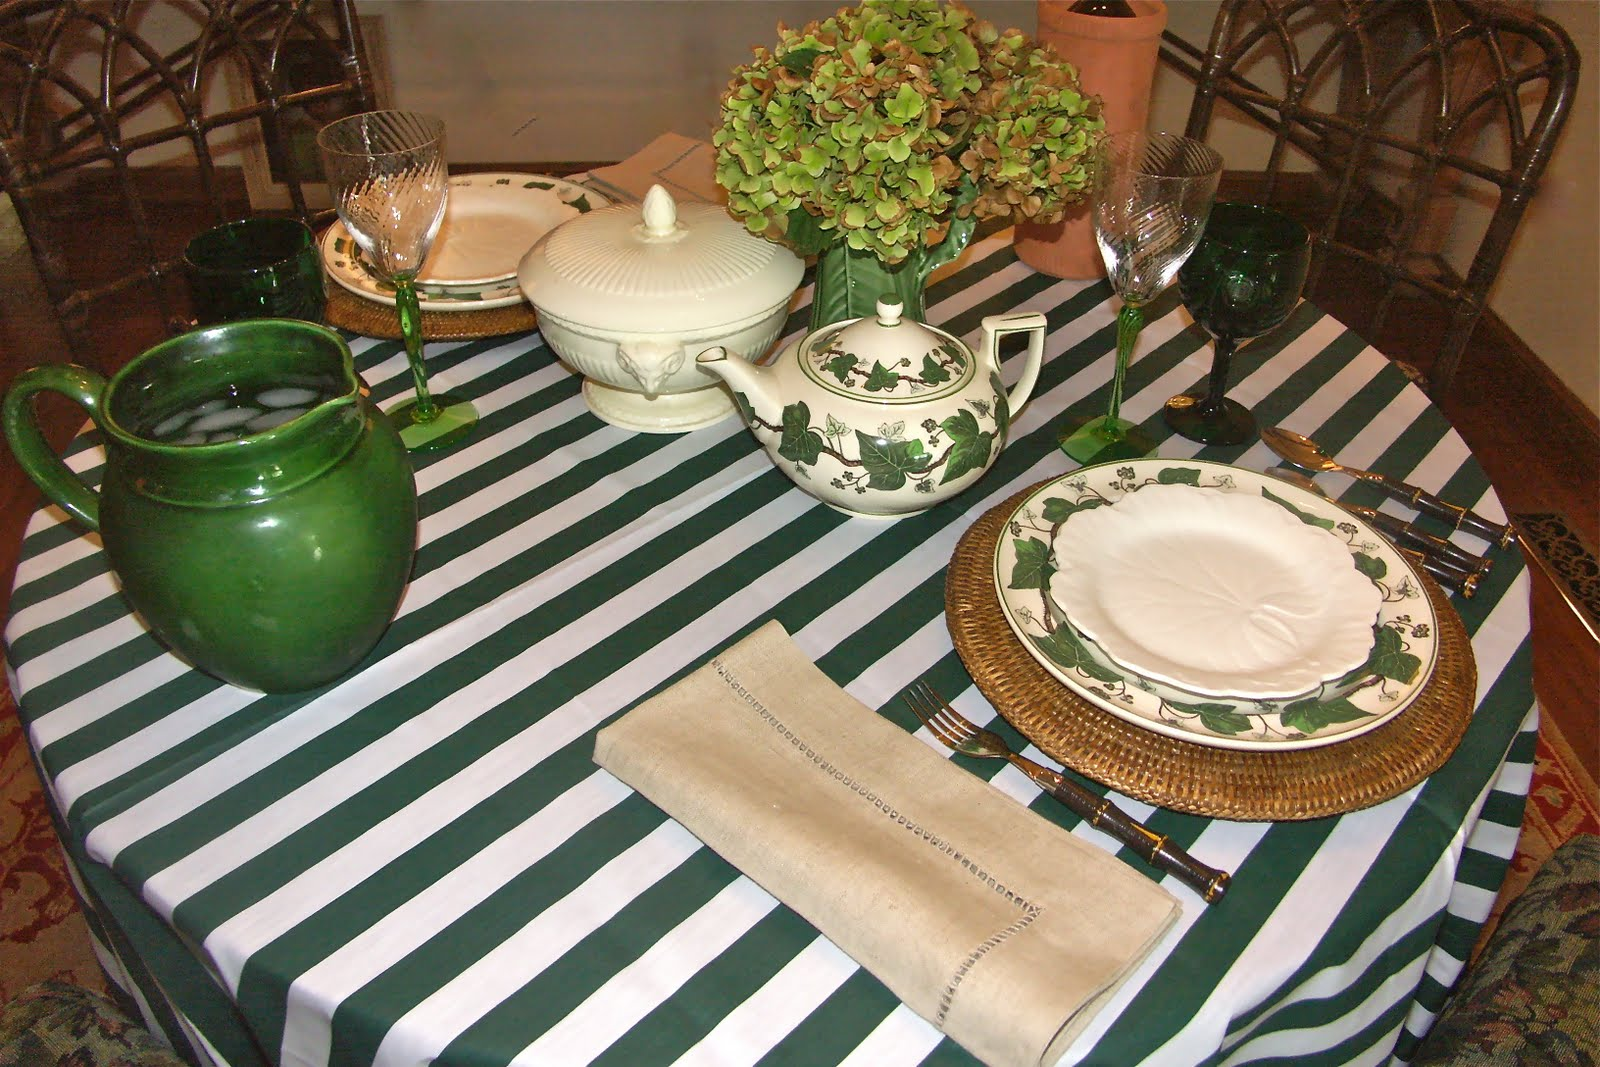 The Green And White Striped Tablecloth Is One Of Three That I Bought For A  Song On EBay. It Was A Nice And Easy, U0027coolu0027 Choice For A Hot Day.